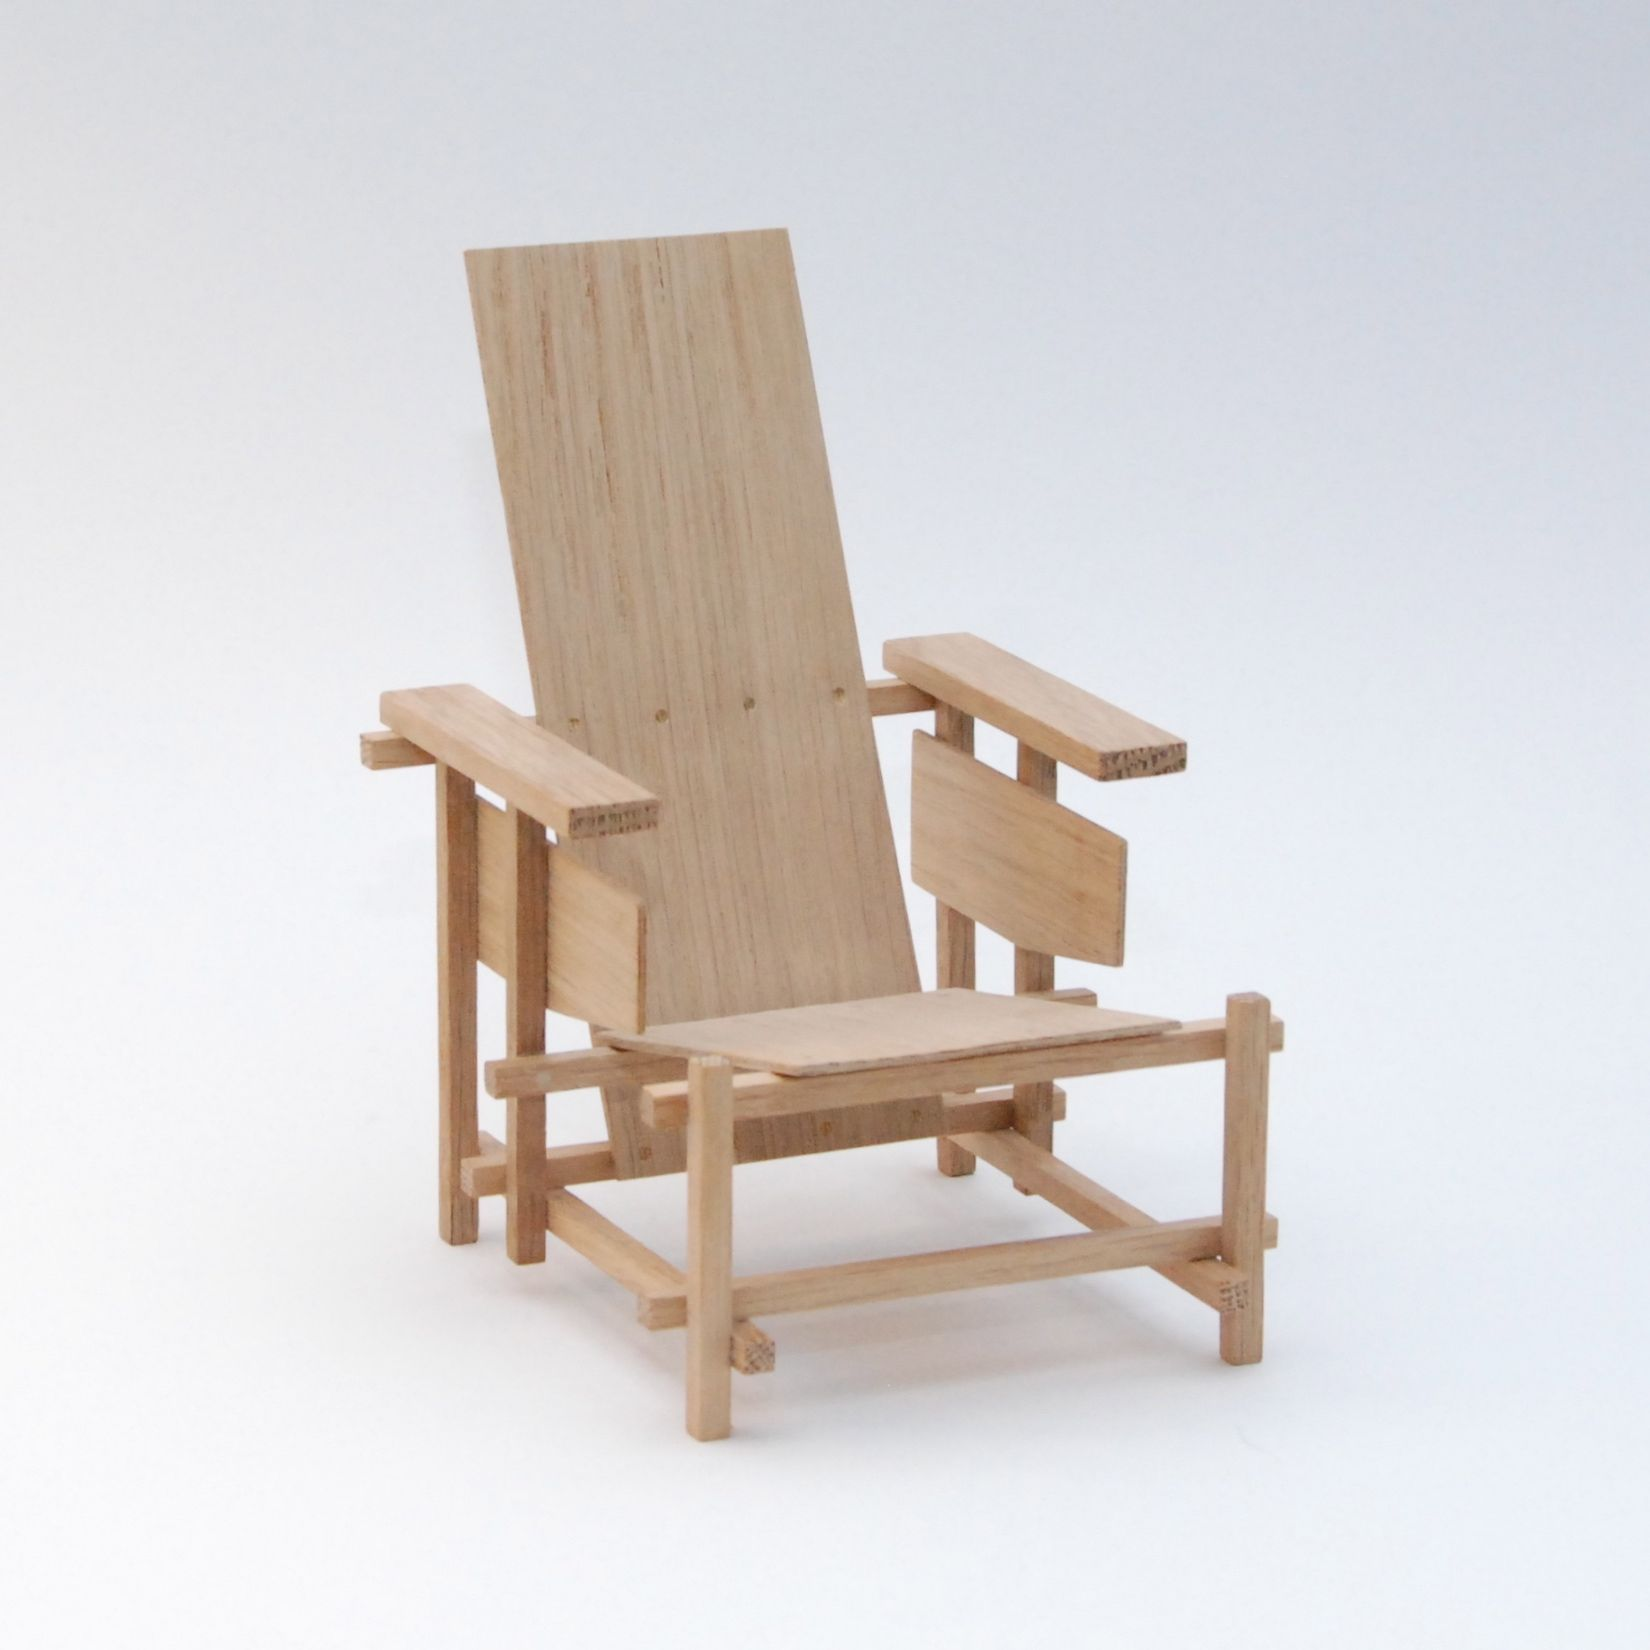 Gerrit rietveld chair for sale - Gerrit Rietveld Design By Gerrit Rietveld 1919 Scale Model Handmade By Cees Jacobs Not For Sale